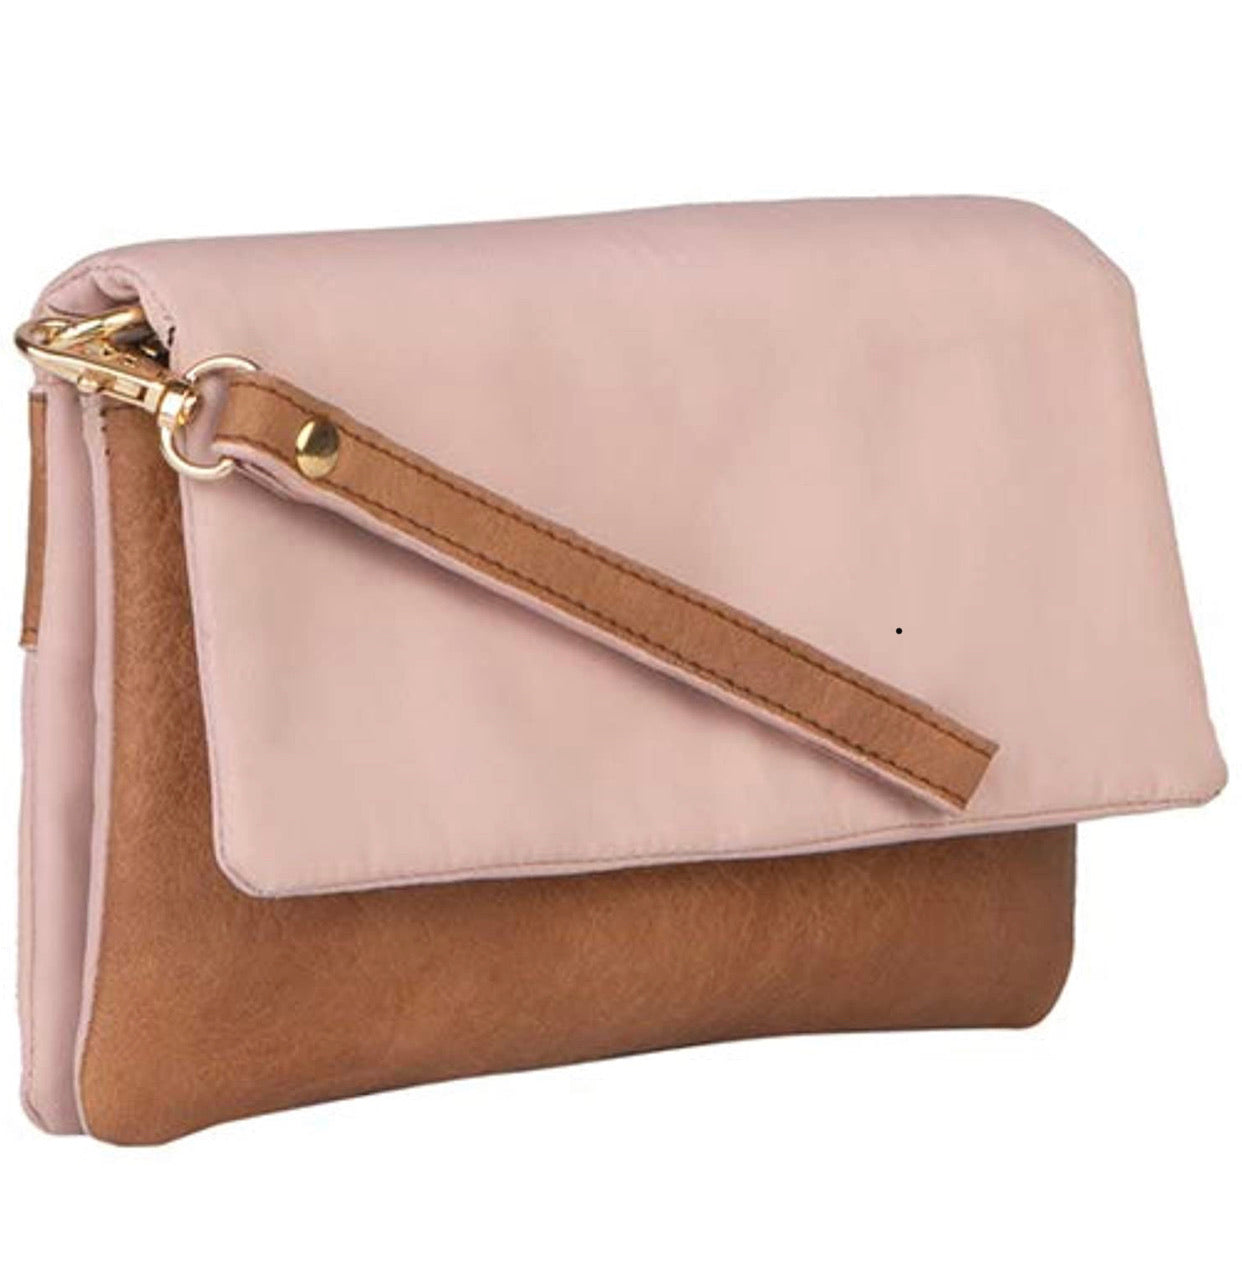 Molly Crossbody Short Description: Hybrid Recycled Polyester Convertible Crossbody